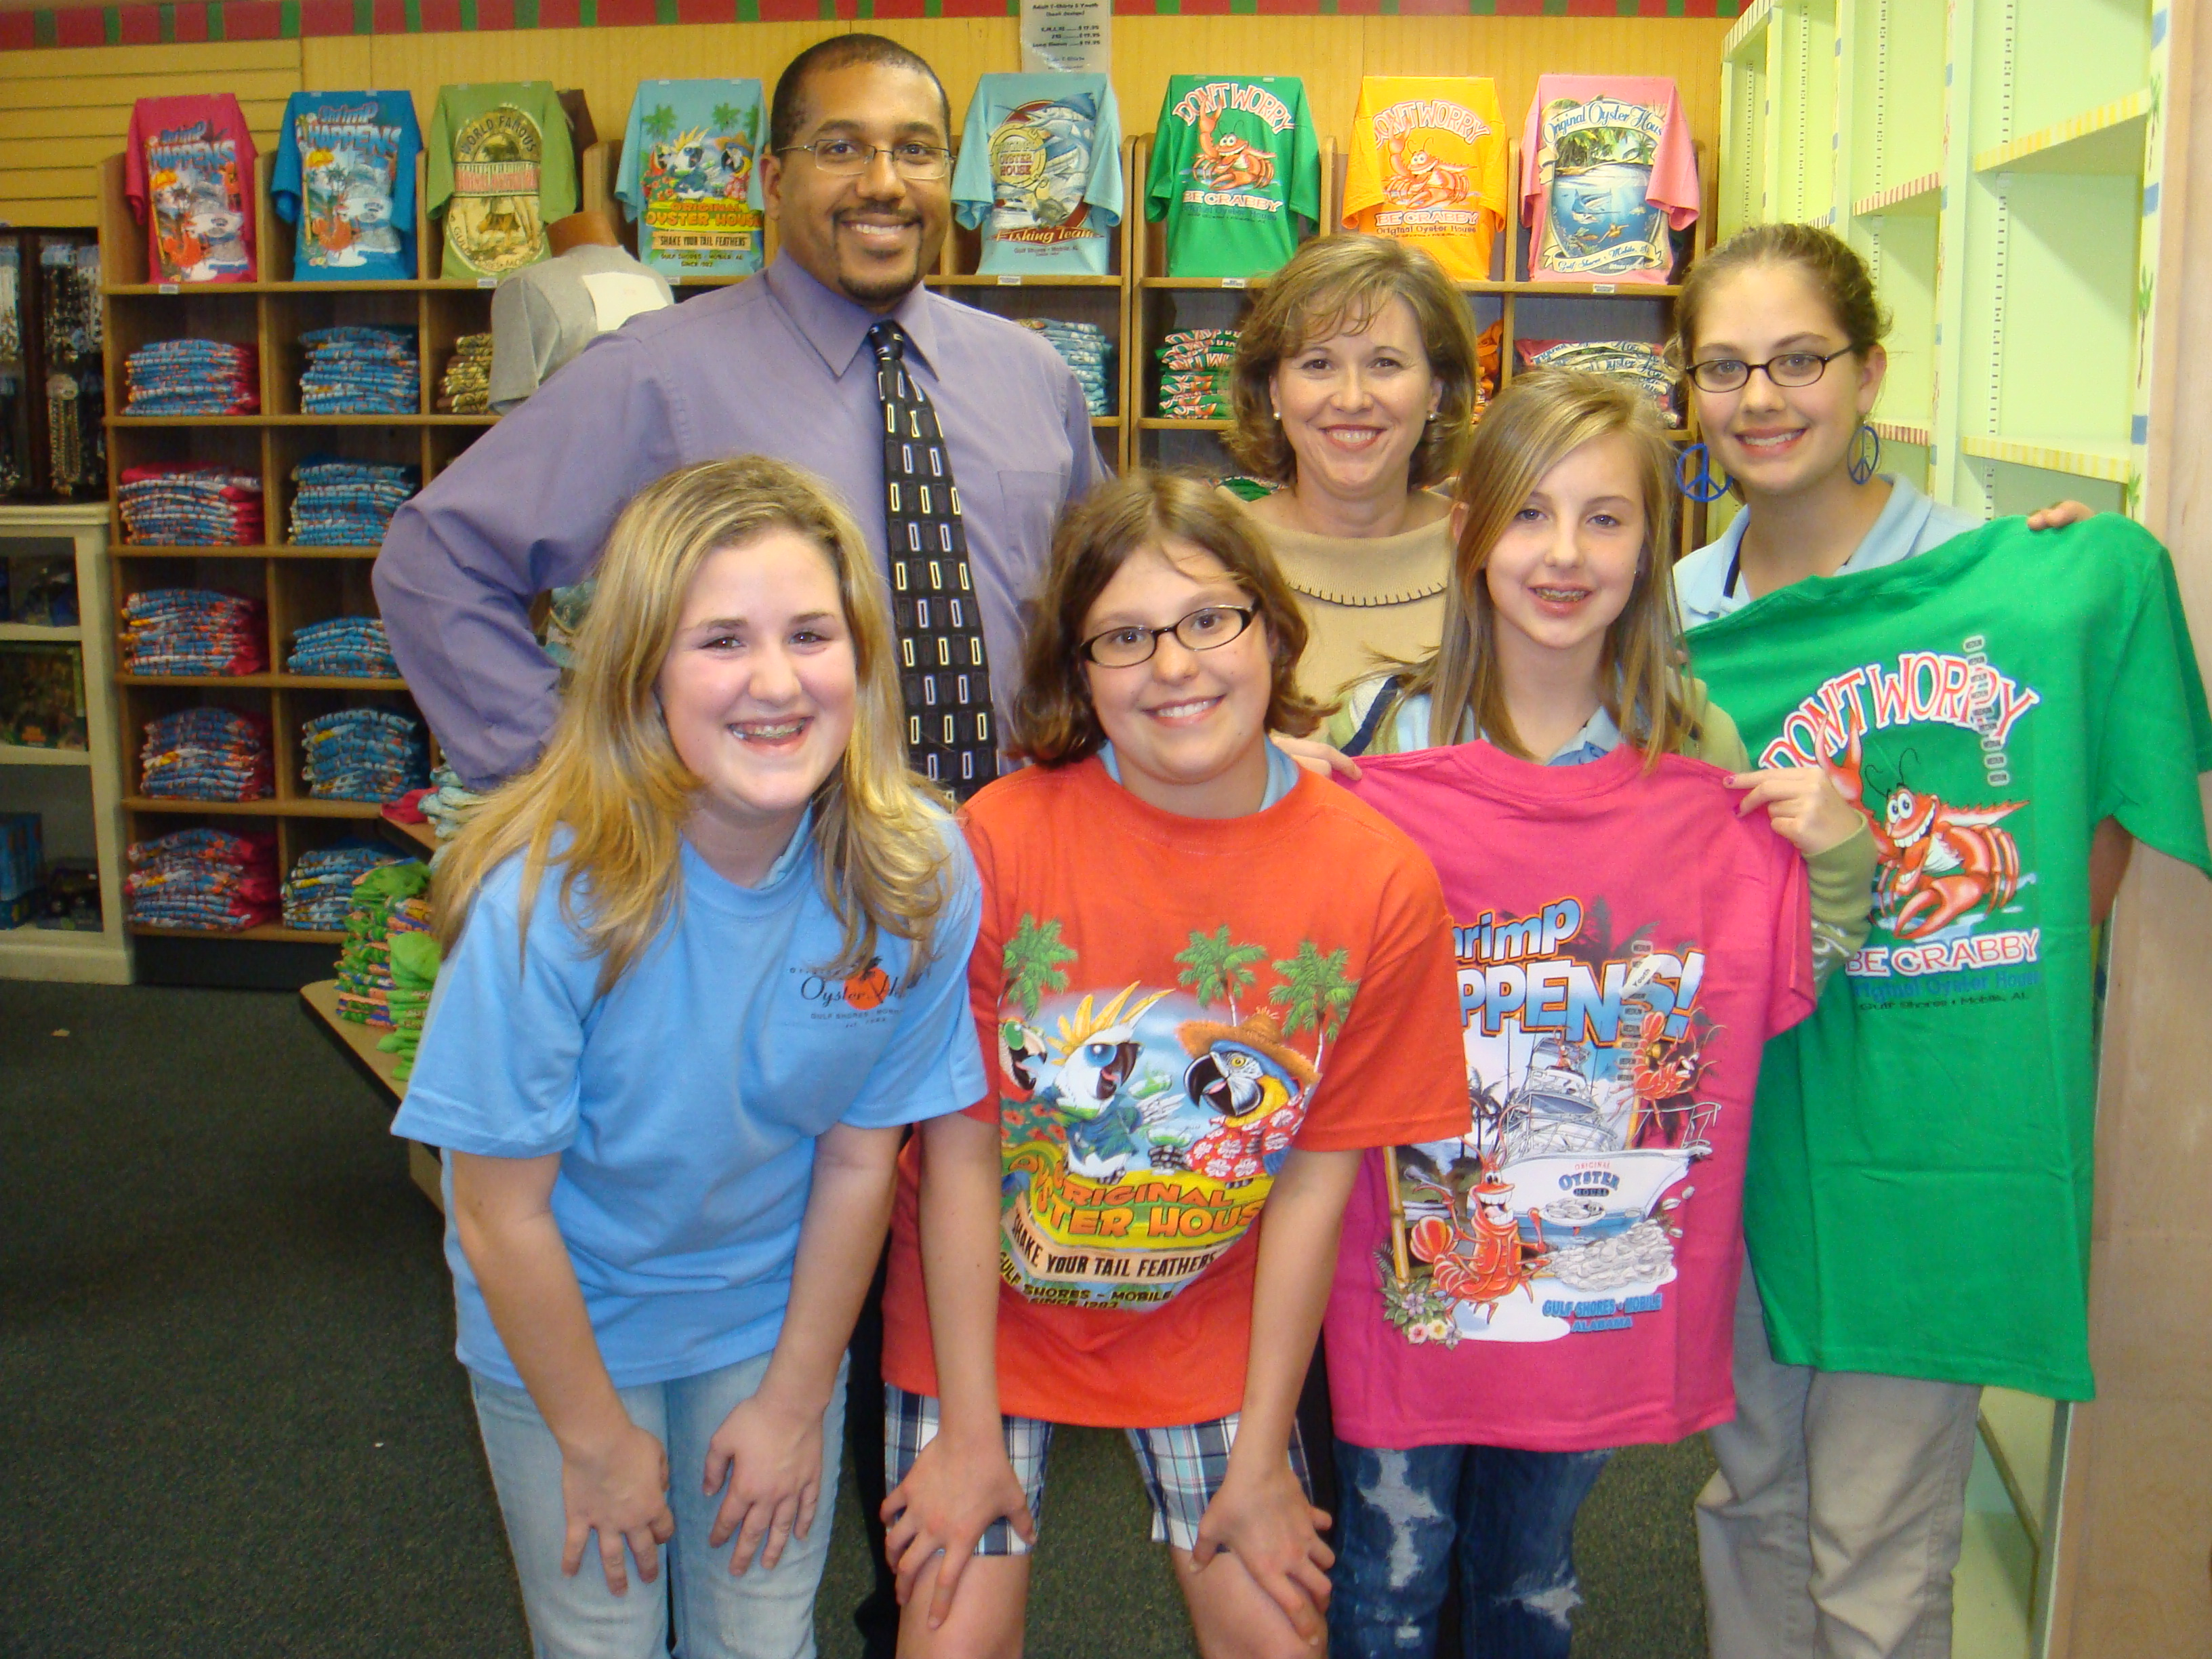 Group of students from Gulf Shores elementary school wearing Original Oyster House Shirts